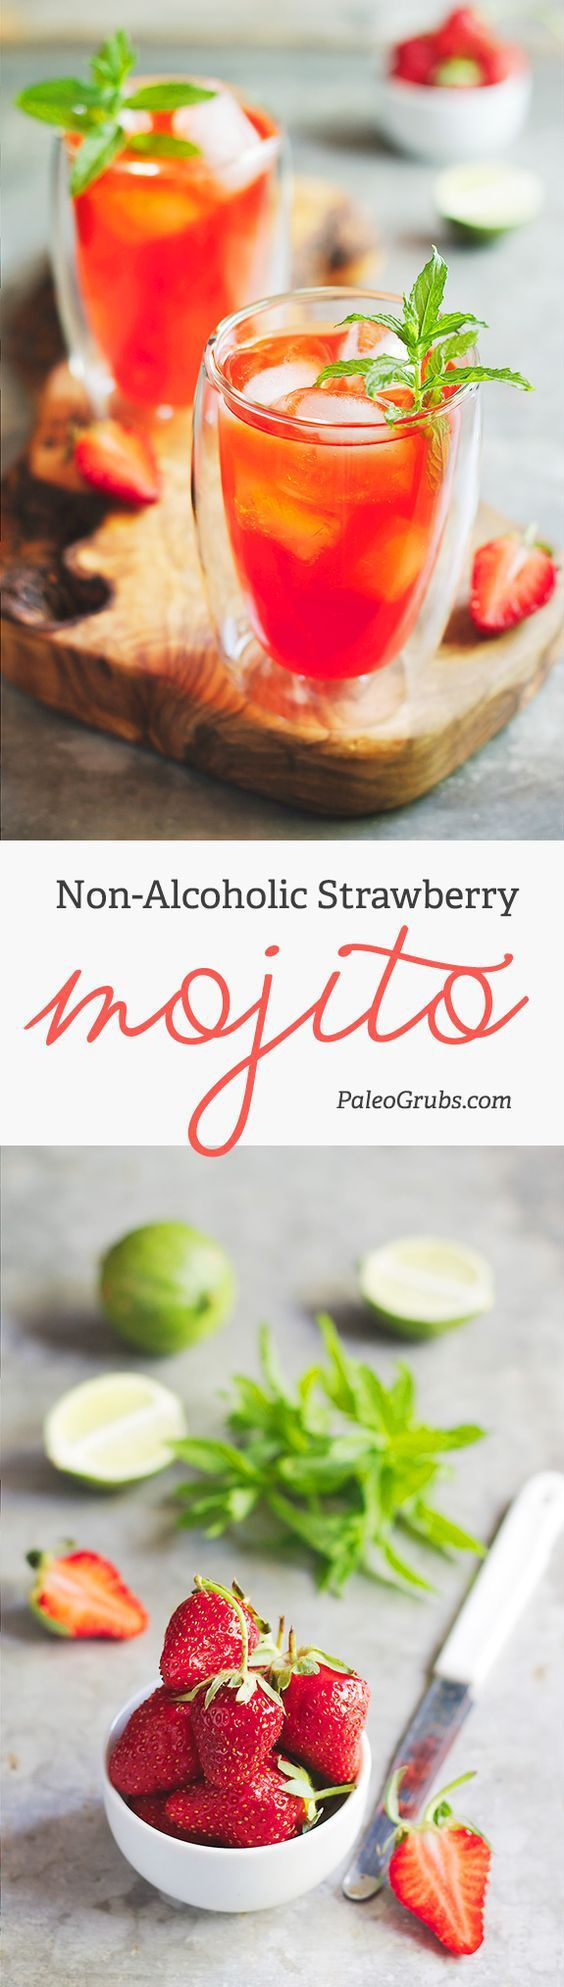 Non-Alcoholic Paleo Strawberry Mojitos Drink Recipe via Paleo Grubs - In this non-alcoholic strawberry mojito you're getting antioxidants from mint and strawberries, as well as Vitamin C from lime. Try it! It is so refreshing, wholesome and perfect for a hot day. The BEST Easy Non-Alcoholic Drinks Recipes - Creative Mocktails and Family Friendly, Alcohol-Free, Big Batch Party Beverages for a Crowd!